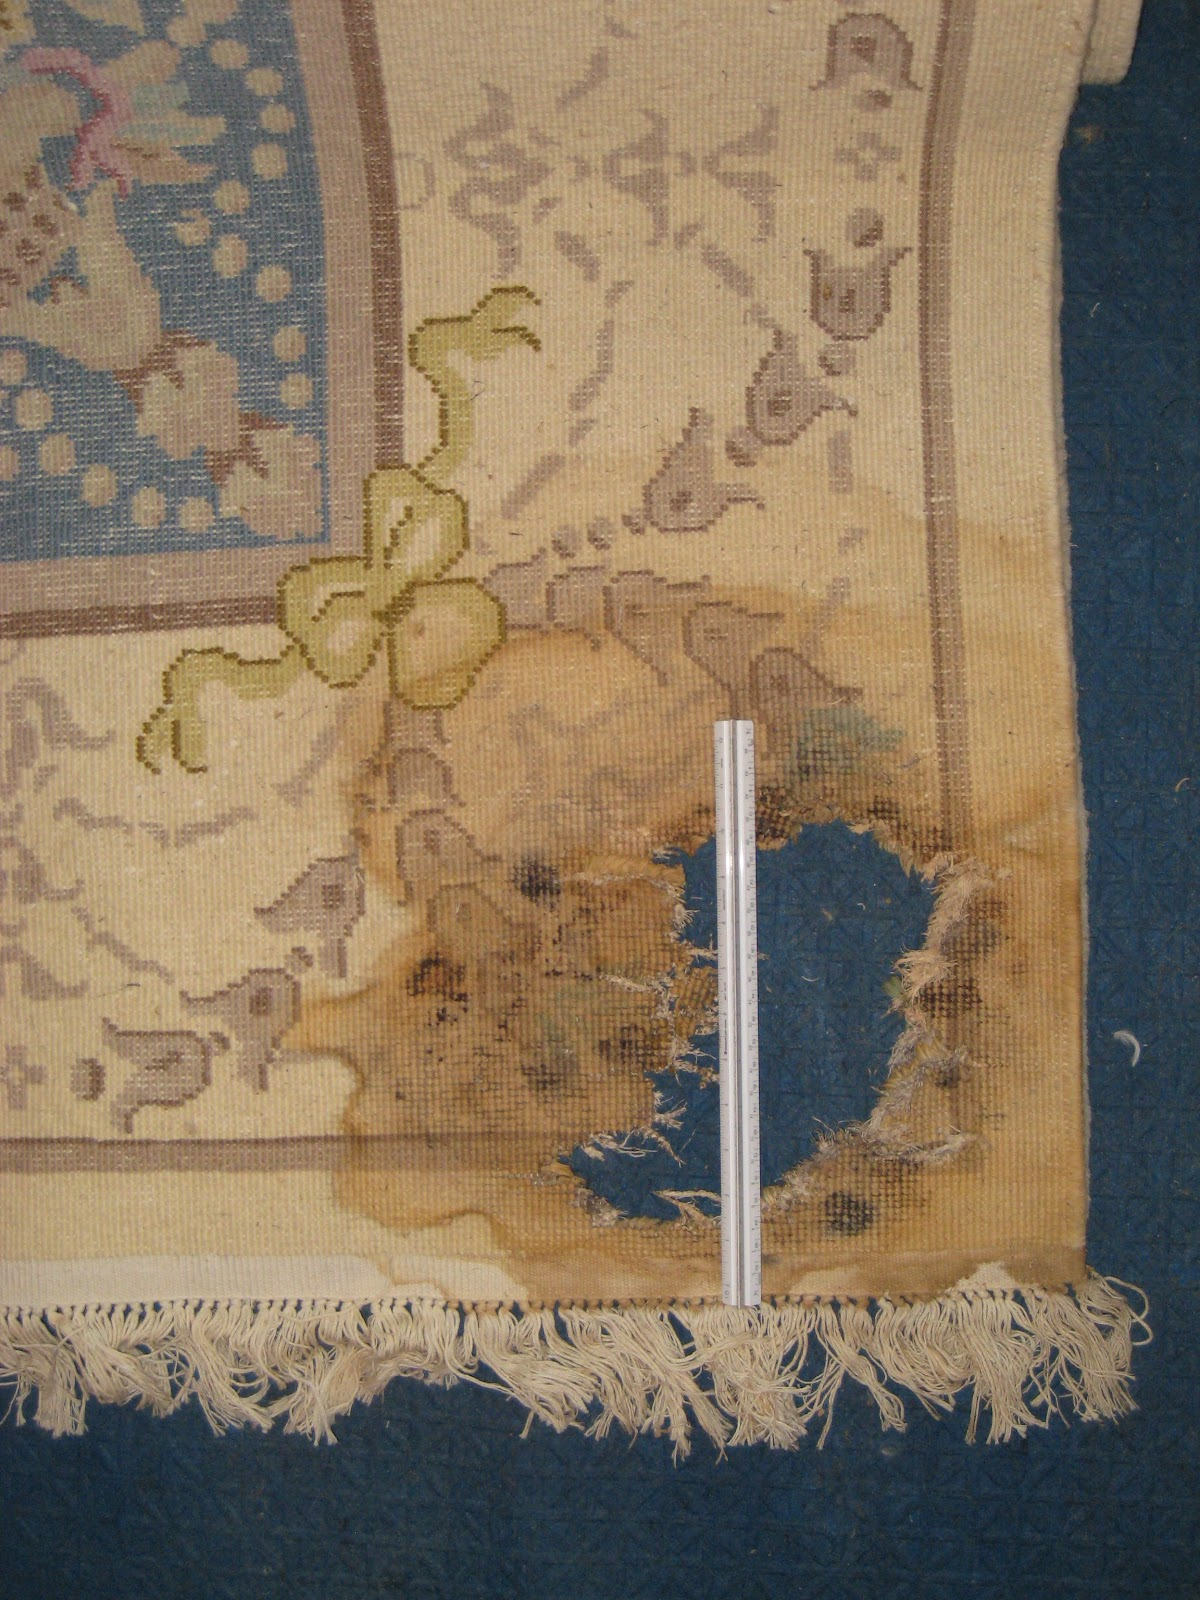 Water Damaged Rug Due To Improper Plant Installation